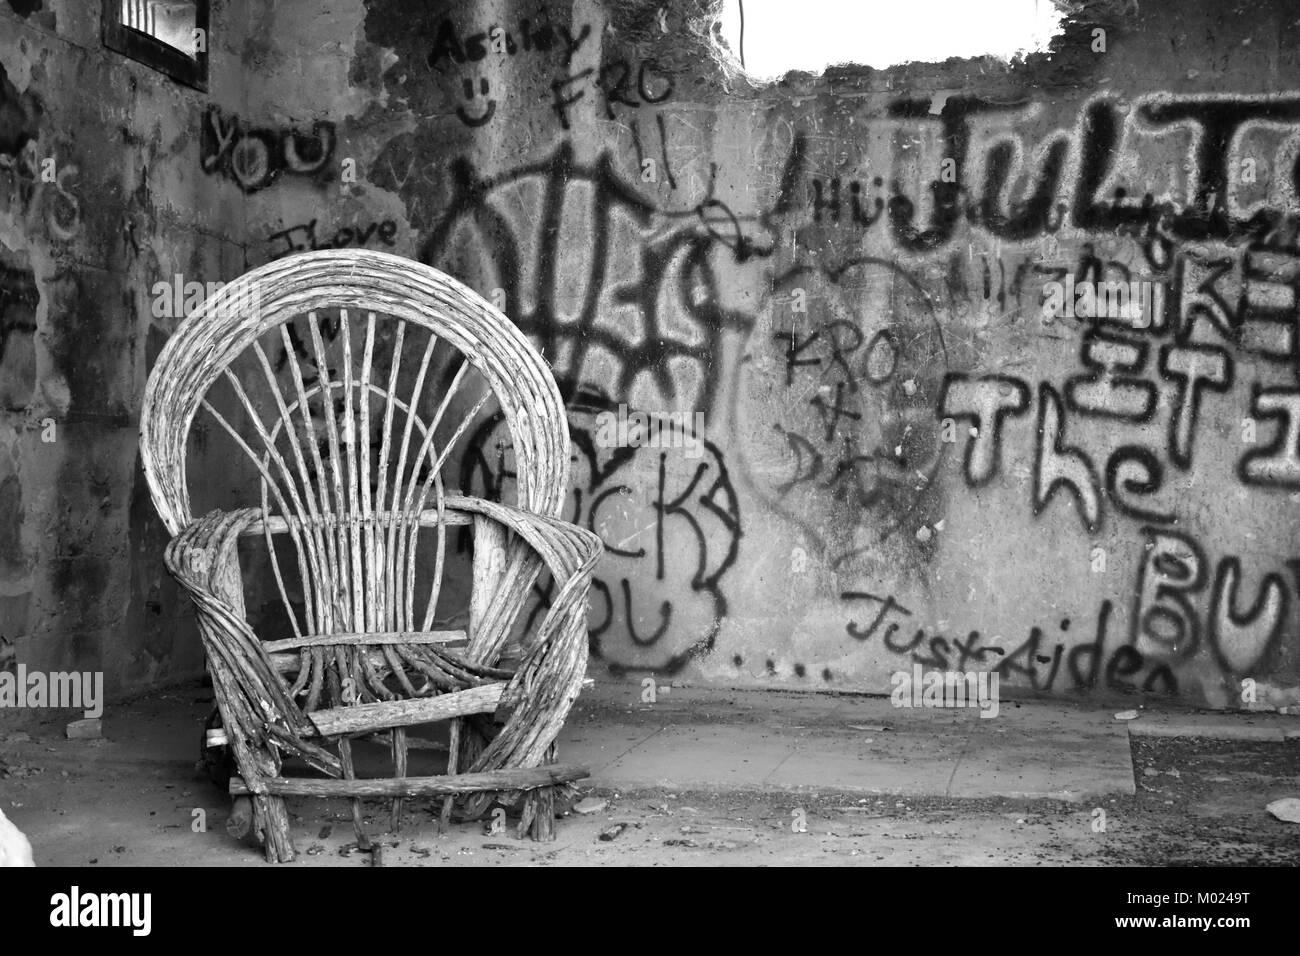 Wicker chair in abandoned jail - Stock Image